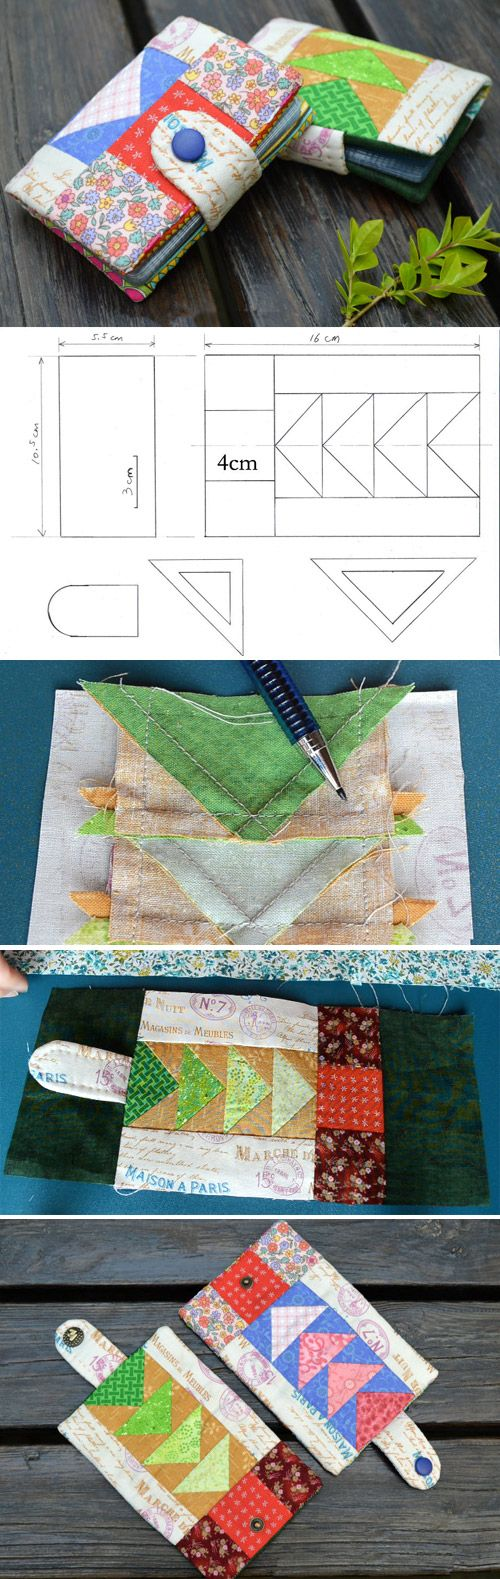 Business card holder patchwork tutorial instructions for sewing in business card holder patchwork tutorial instructions for sewing in a photo http reheart Image collections